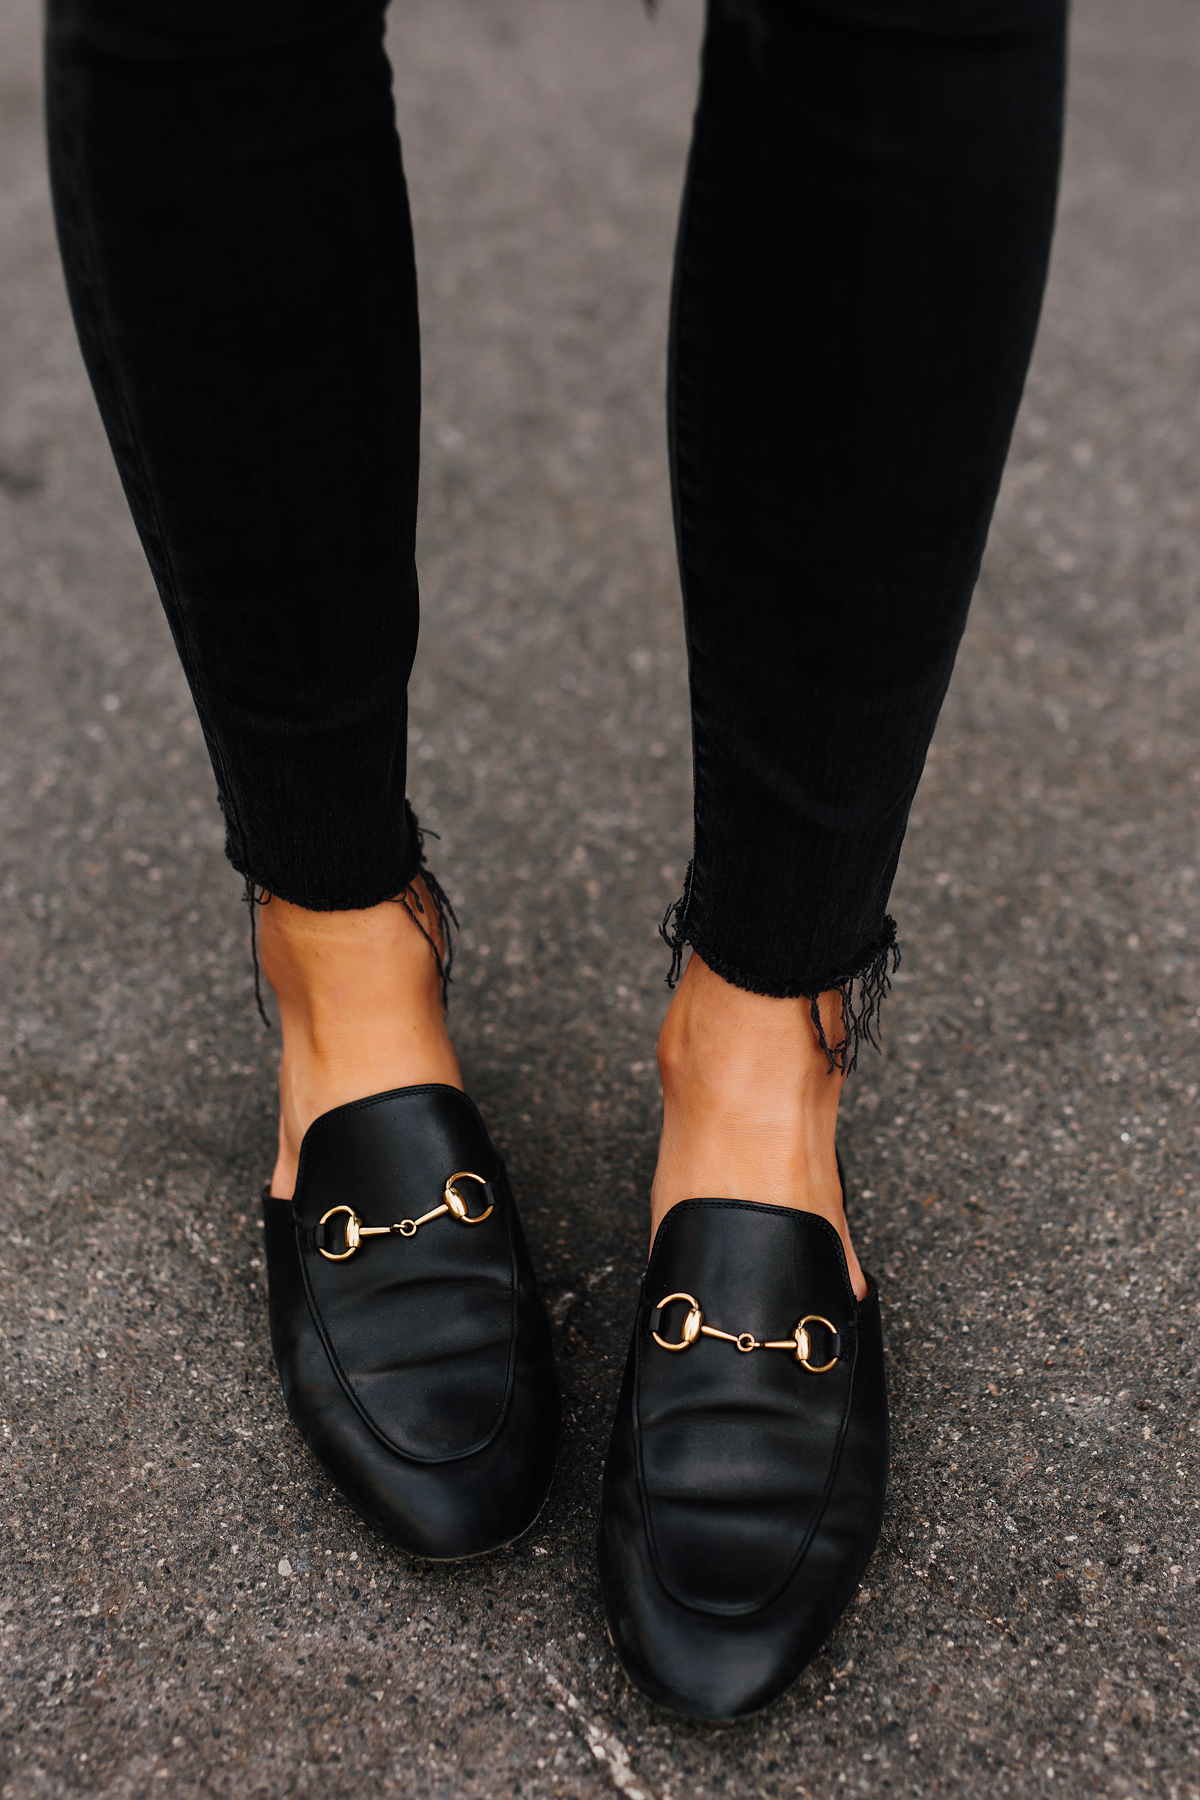 caaaa1279c46 Woman Wearing Gucci Black Princetown Loafer Mules Black Ripped Skinny Jeans  Fashion Jackson San Diego Fashion. Blonde Woman Wearing Madewell Brown Long  ...